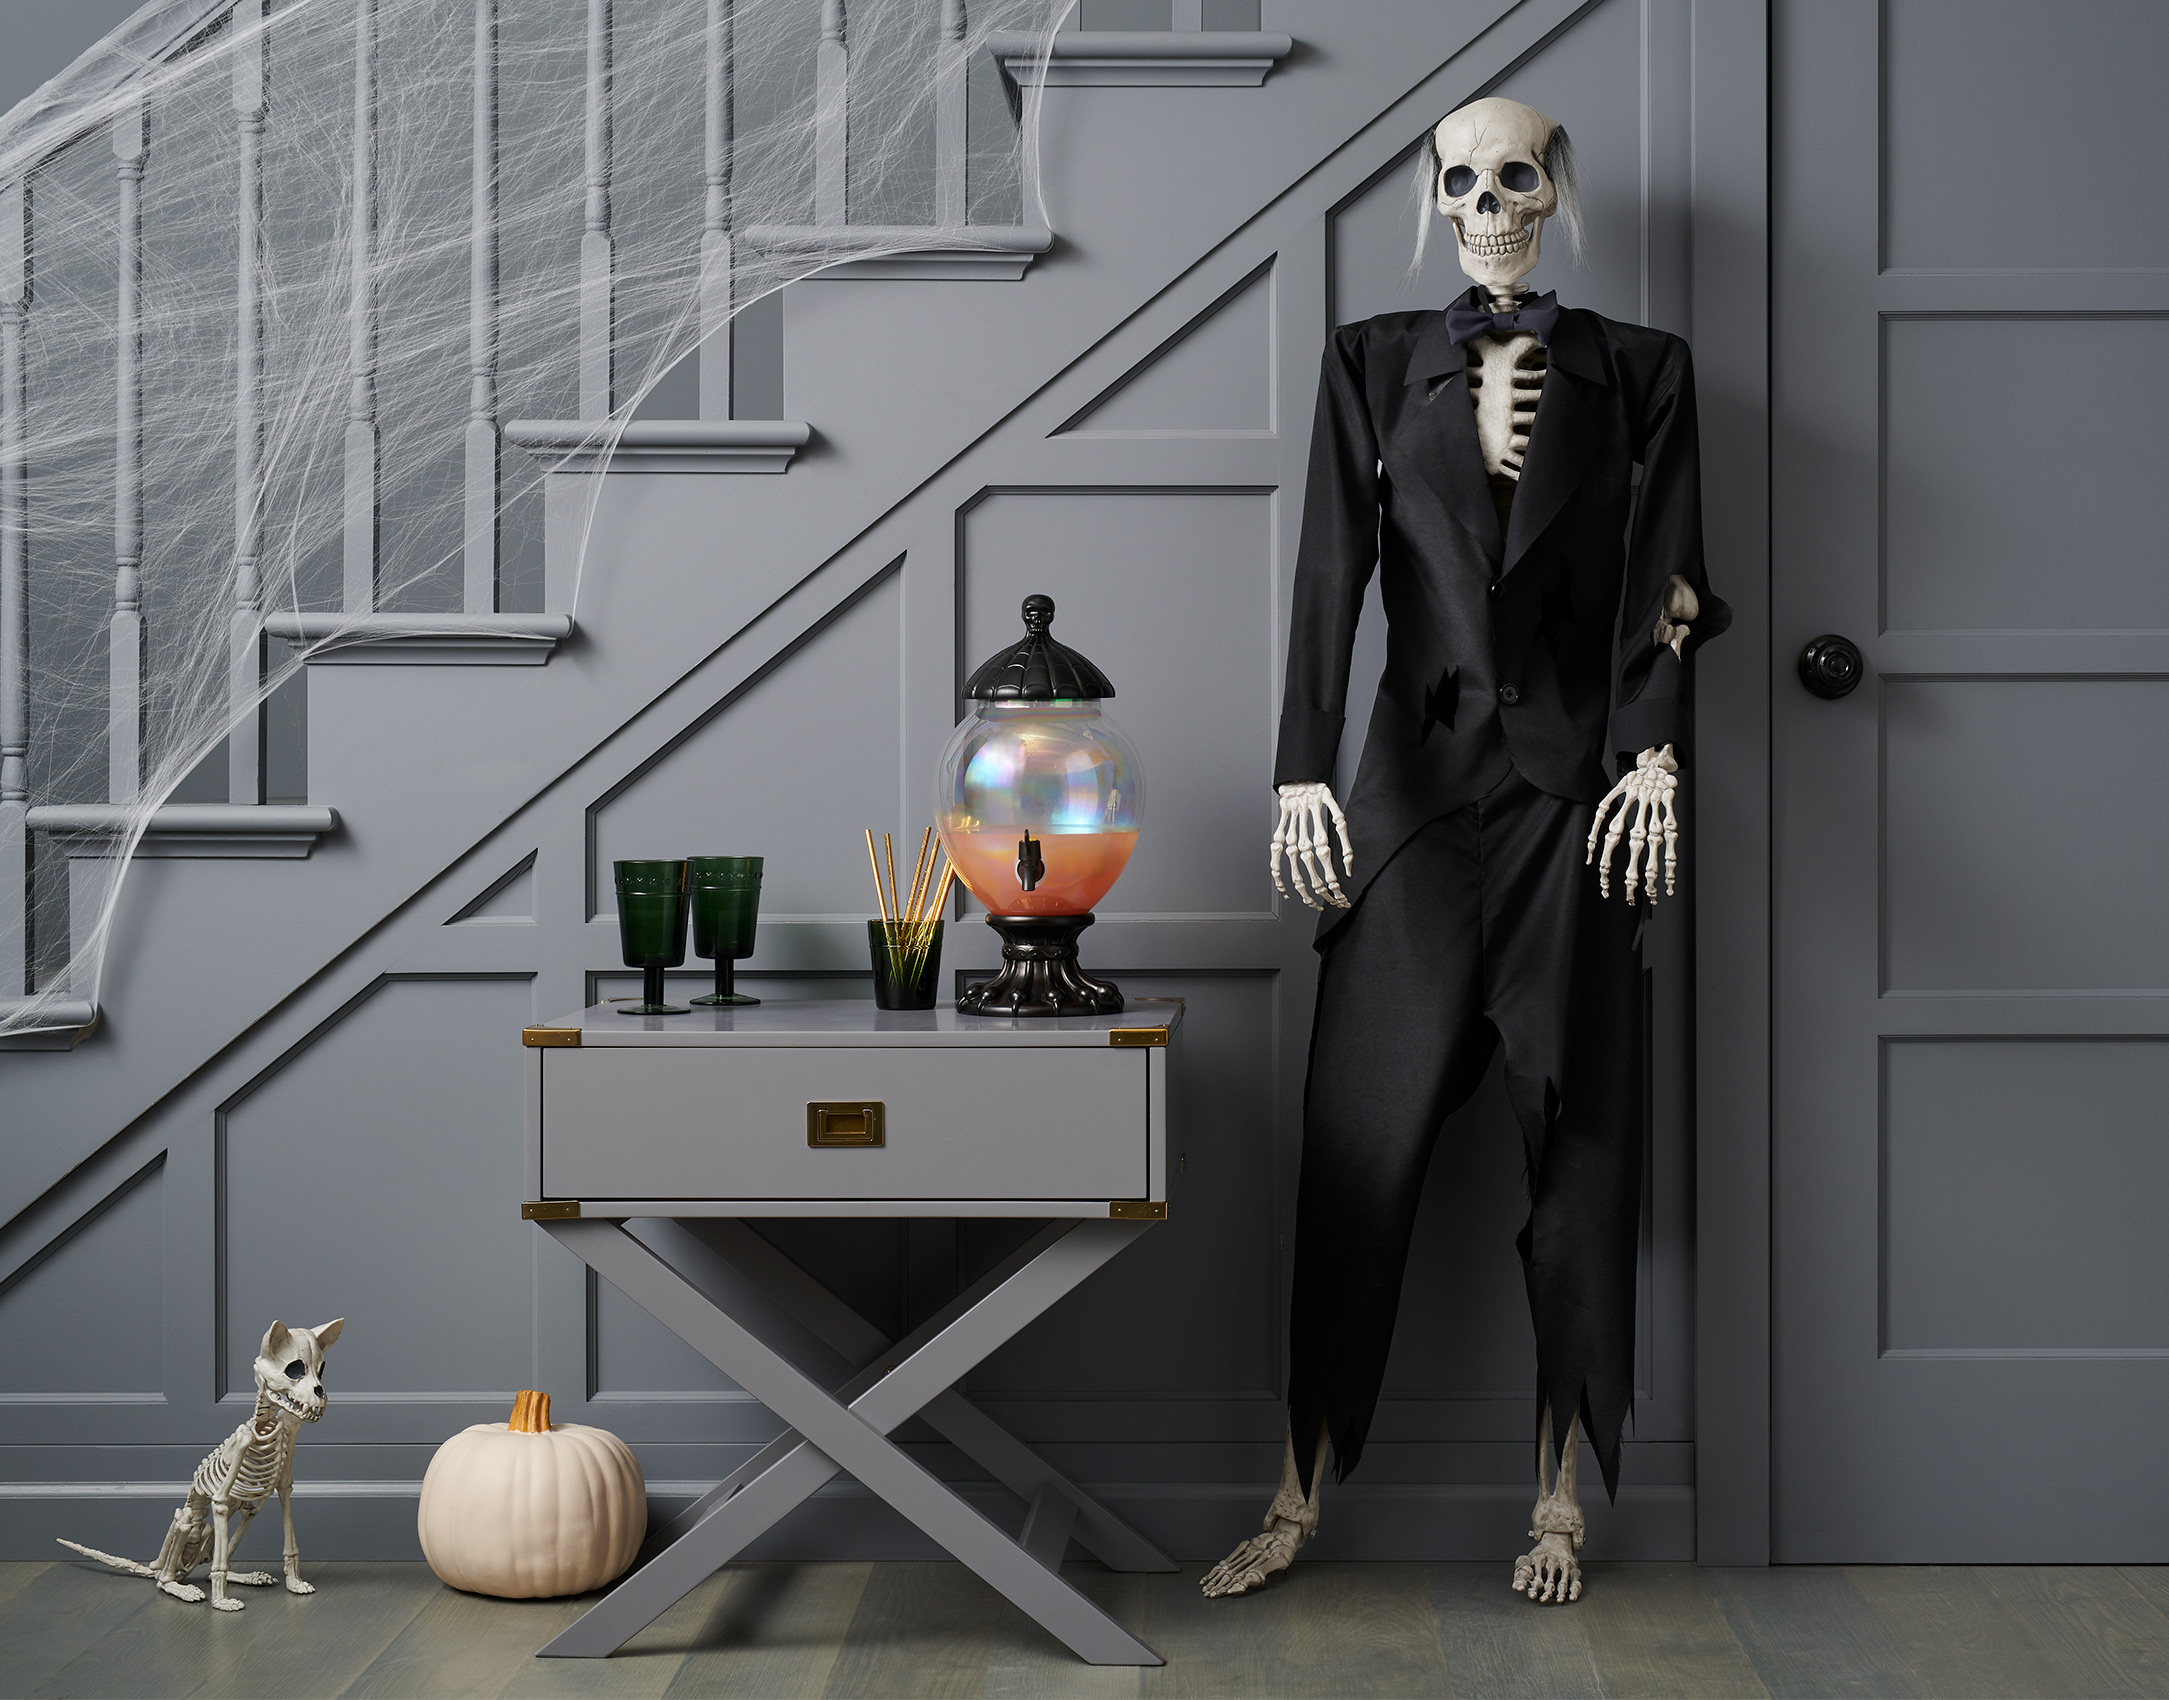 C-000696-02-035_240-43-3510_Skeleton-Dress-Up-Kit-Butler